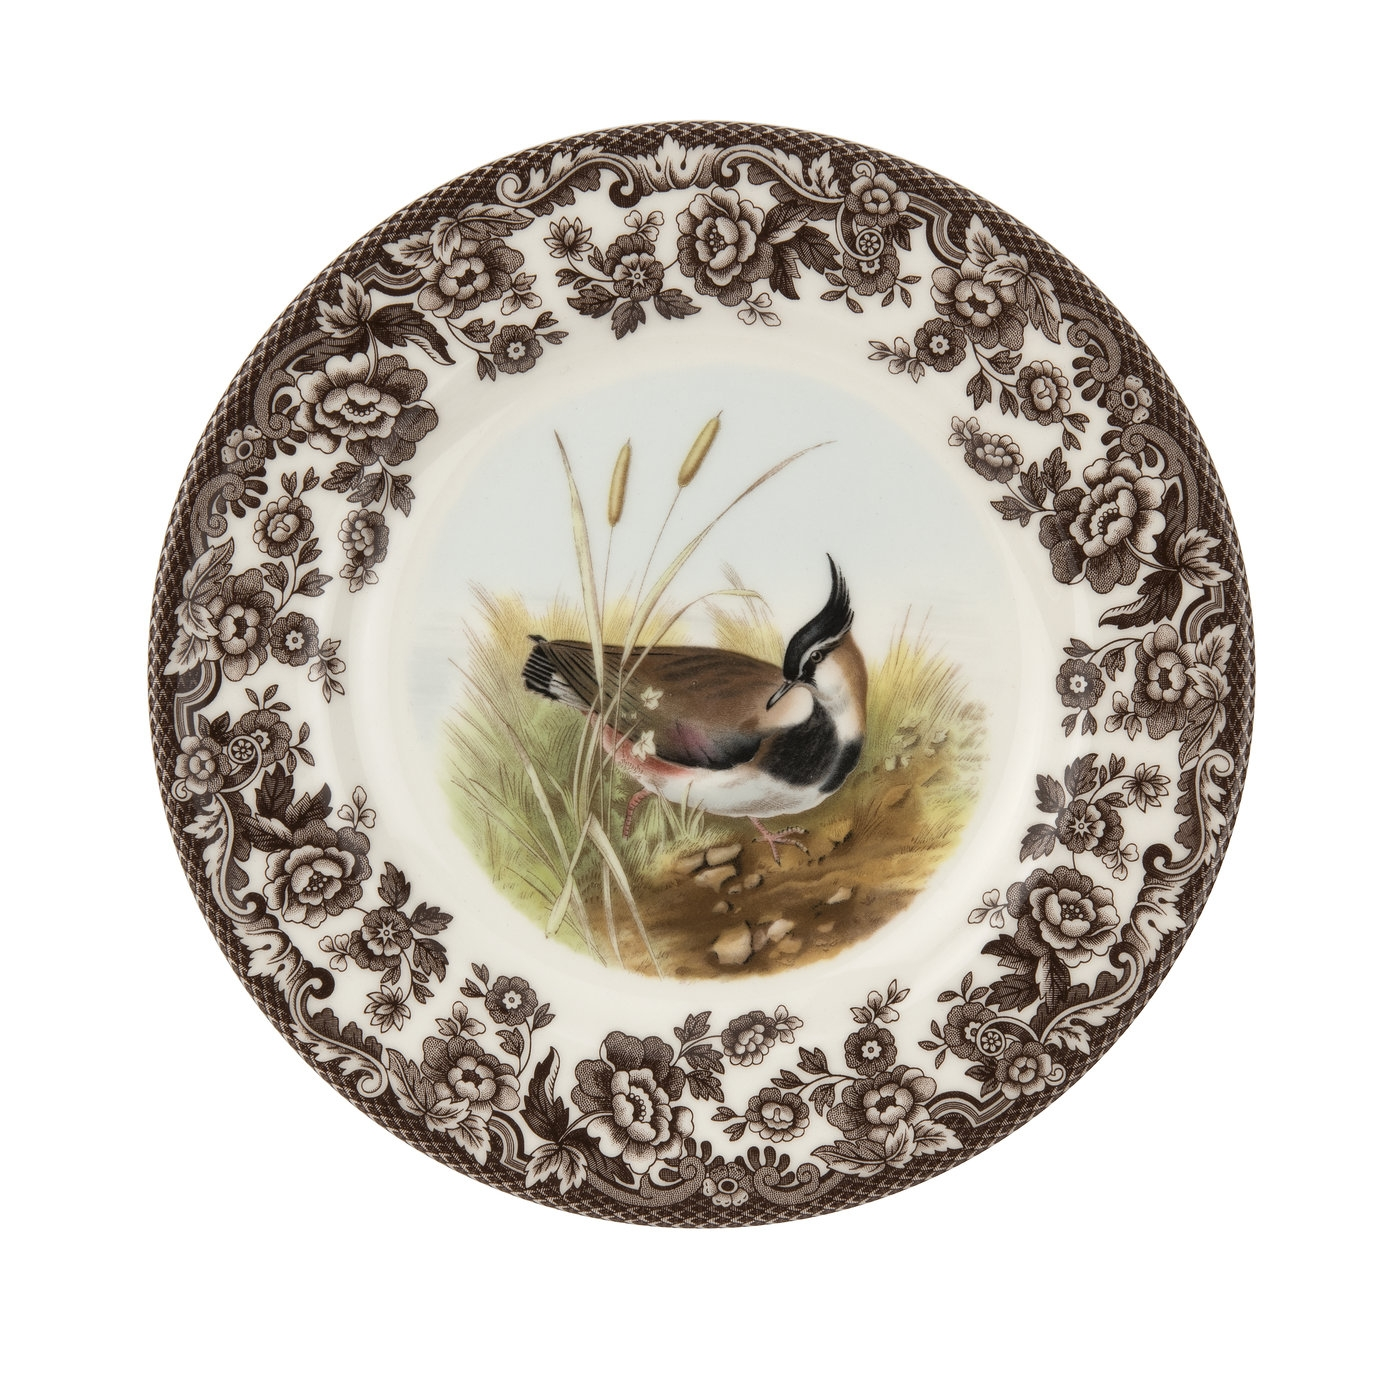 Spode Woodland Salad Plate 8 Inch  (Lapwing) image number 0